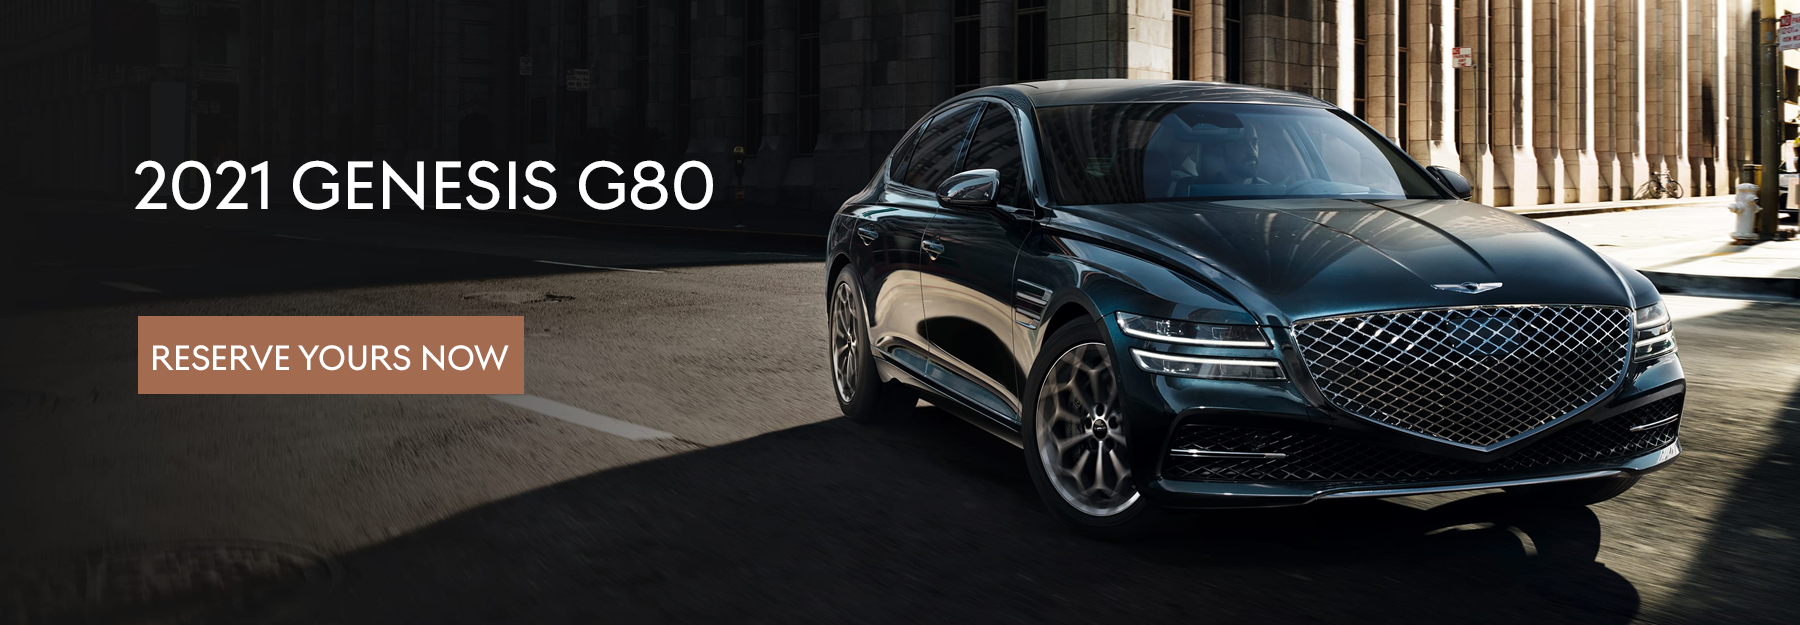 2021 G80 Reserve Yours